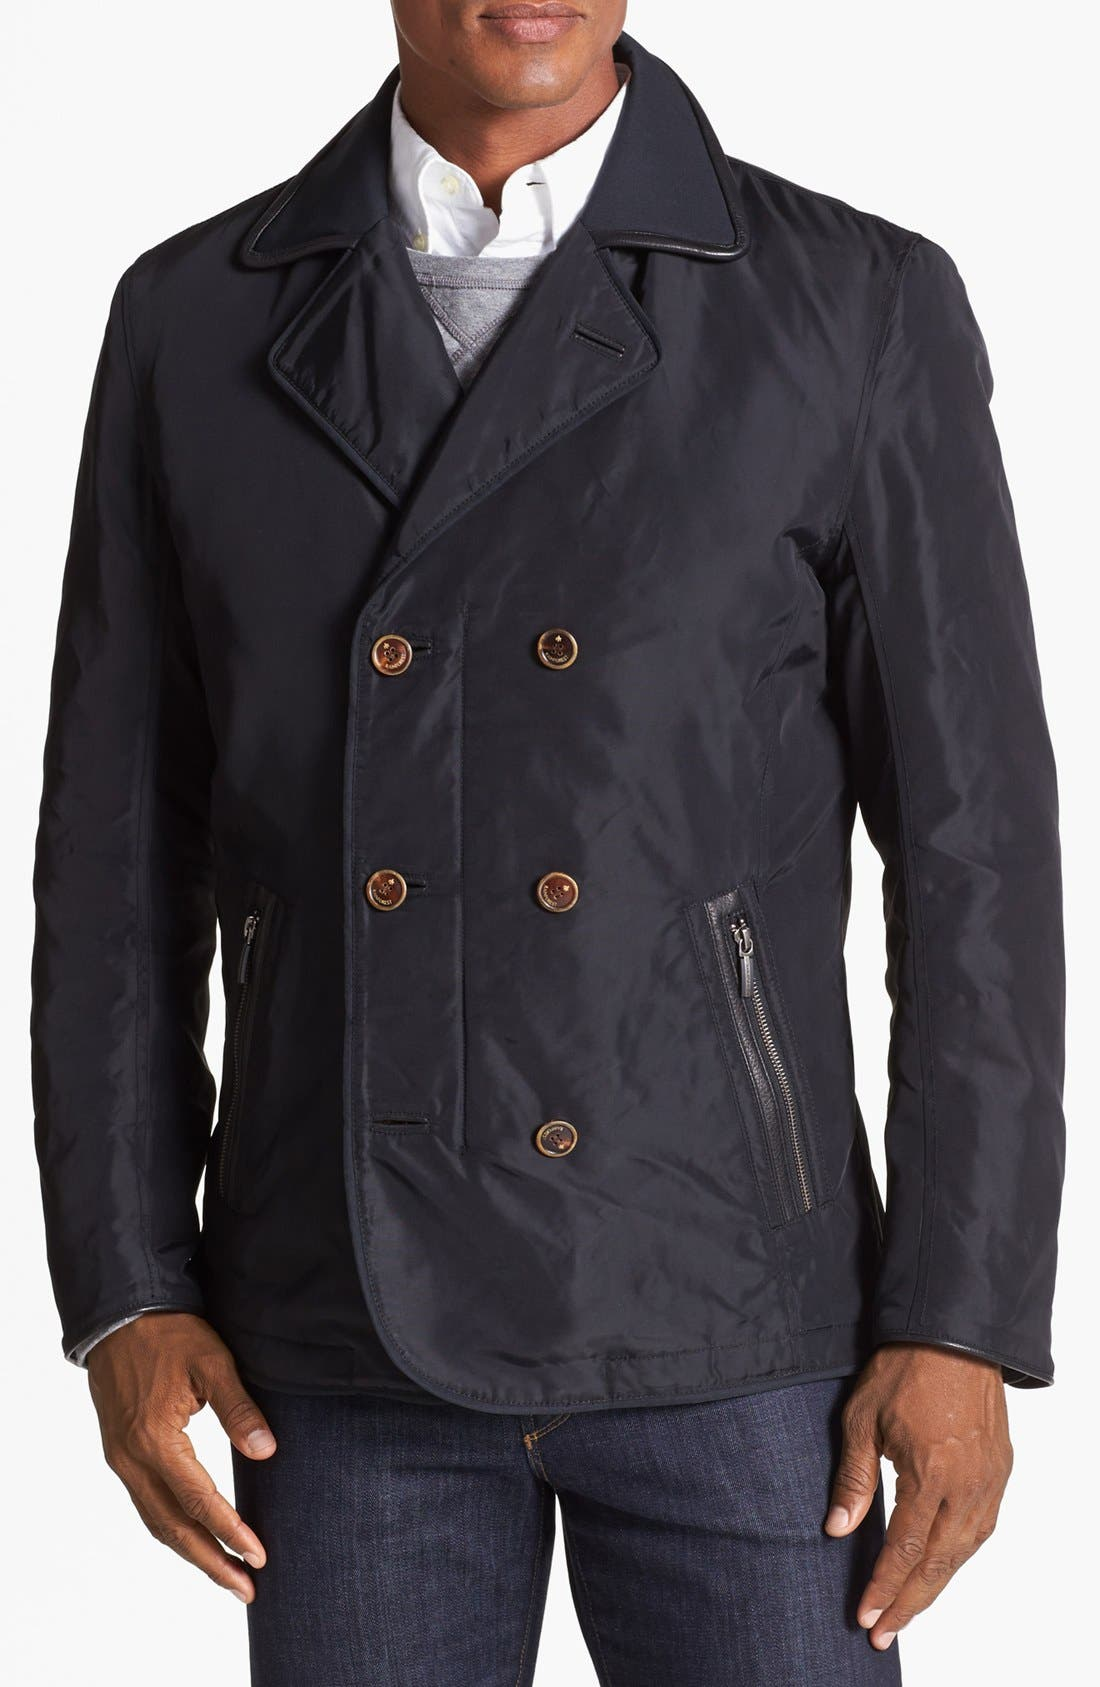 Alternate Image 1 Selected - RAINFOREST Double Breasted Water Repellent Nylon Blazer